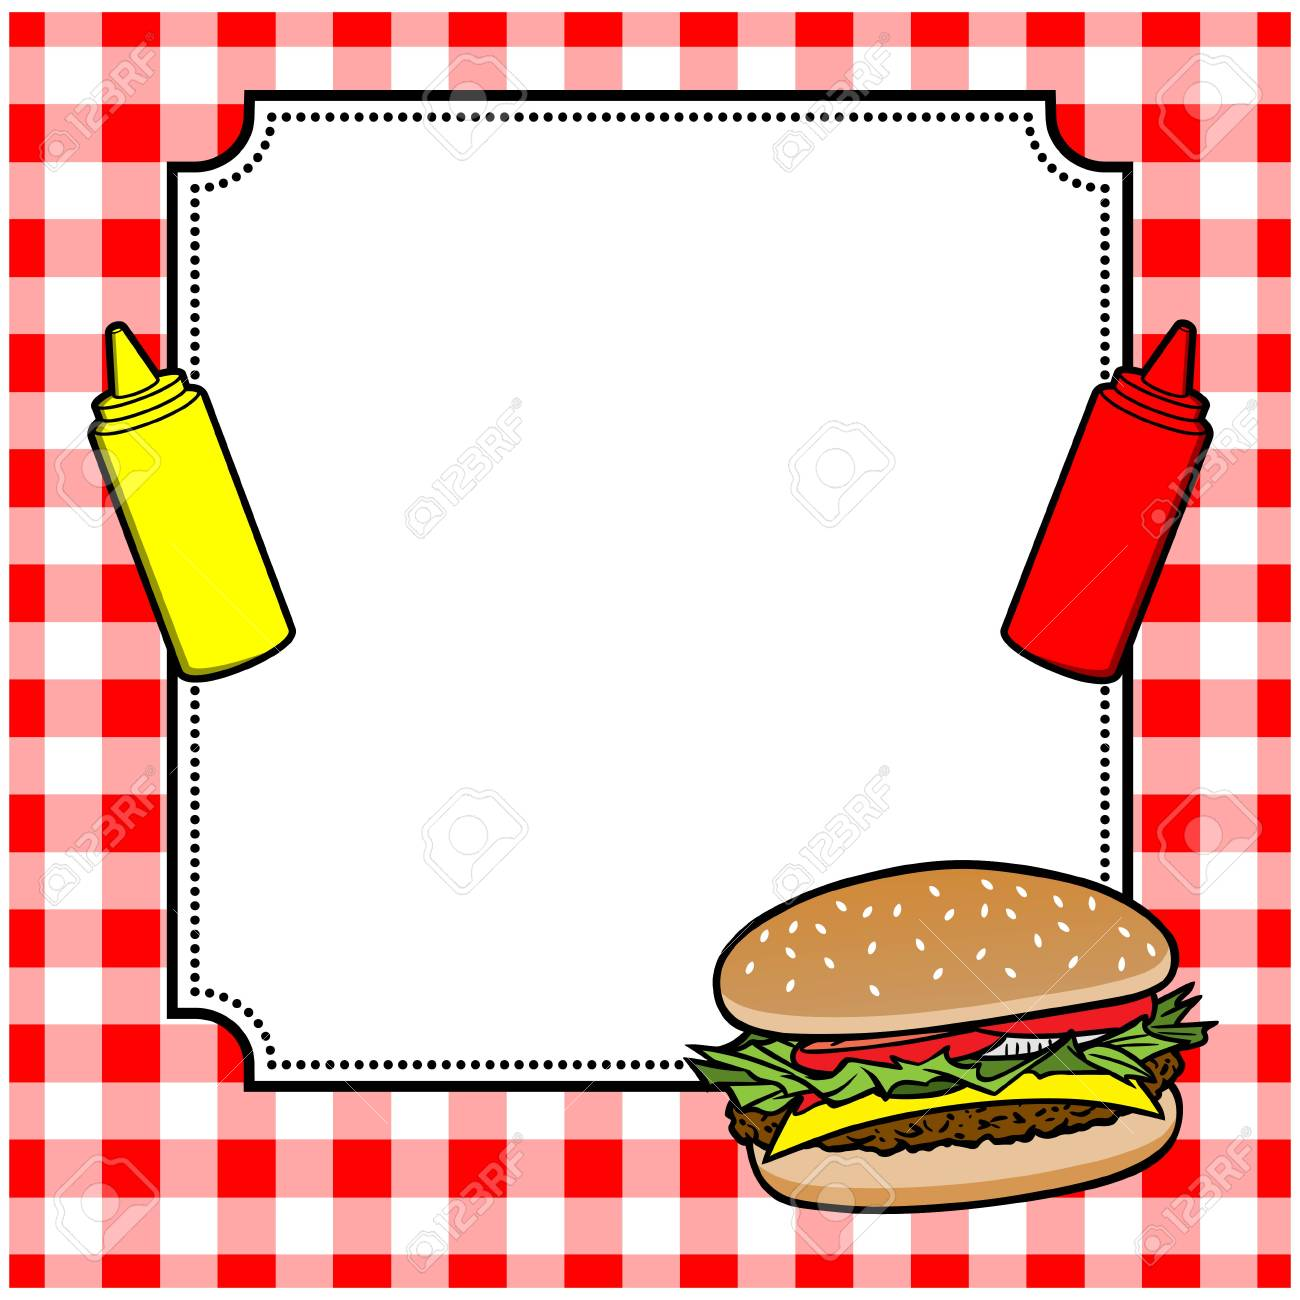 hamburger cookout invite royalty free cliparts vectors and stock